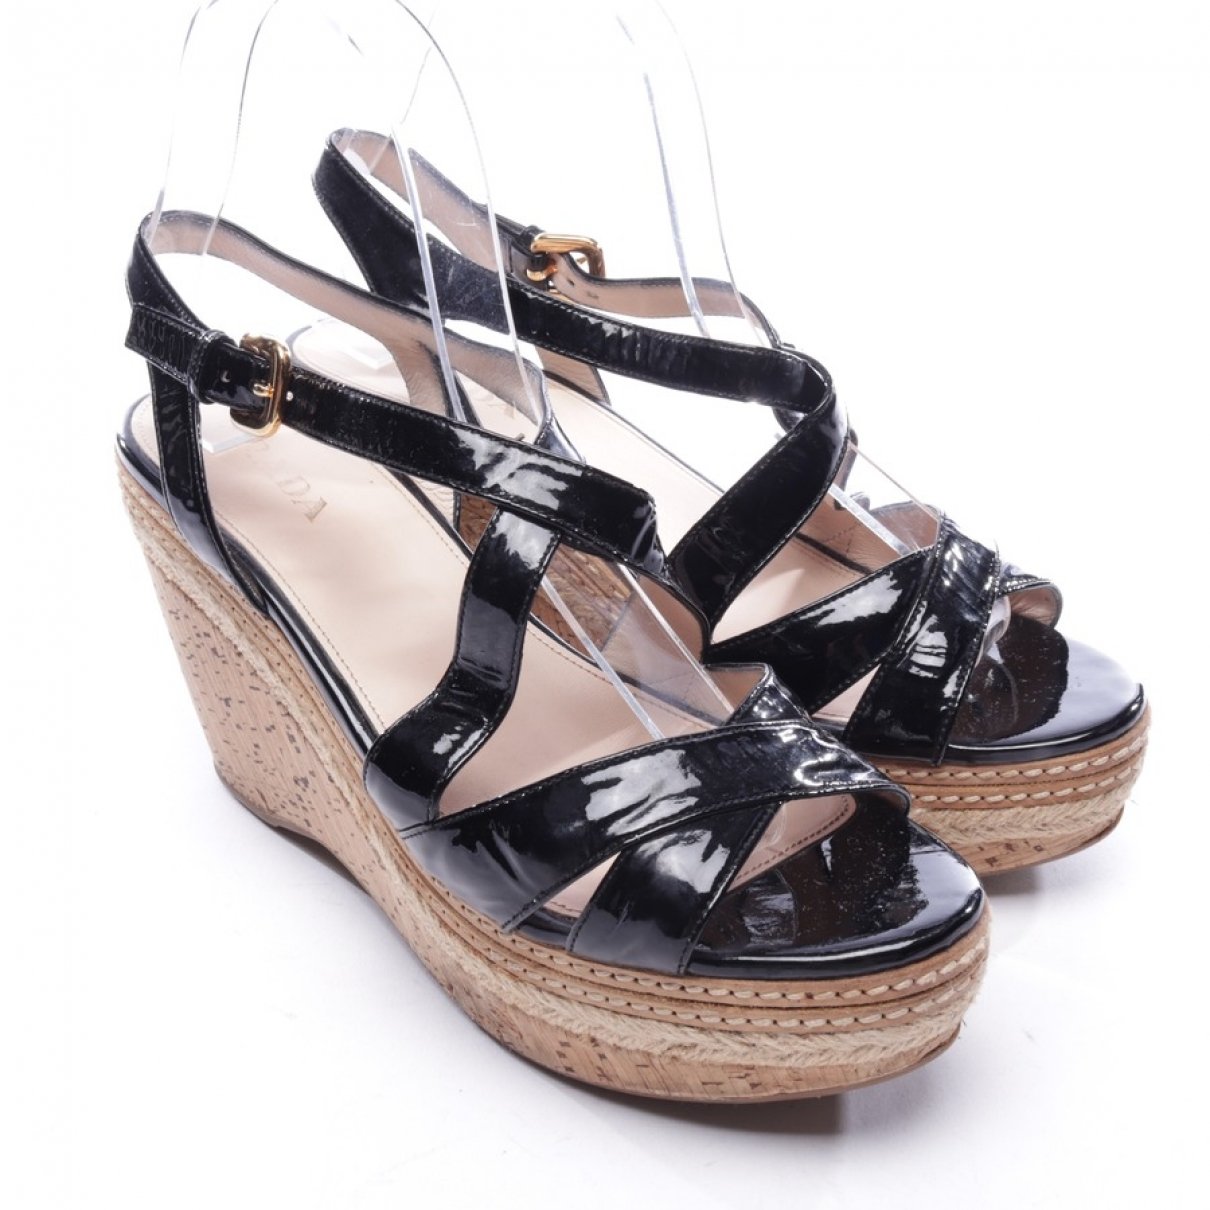 Prada N Black Patent leather Sandals for Women 39 EU